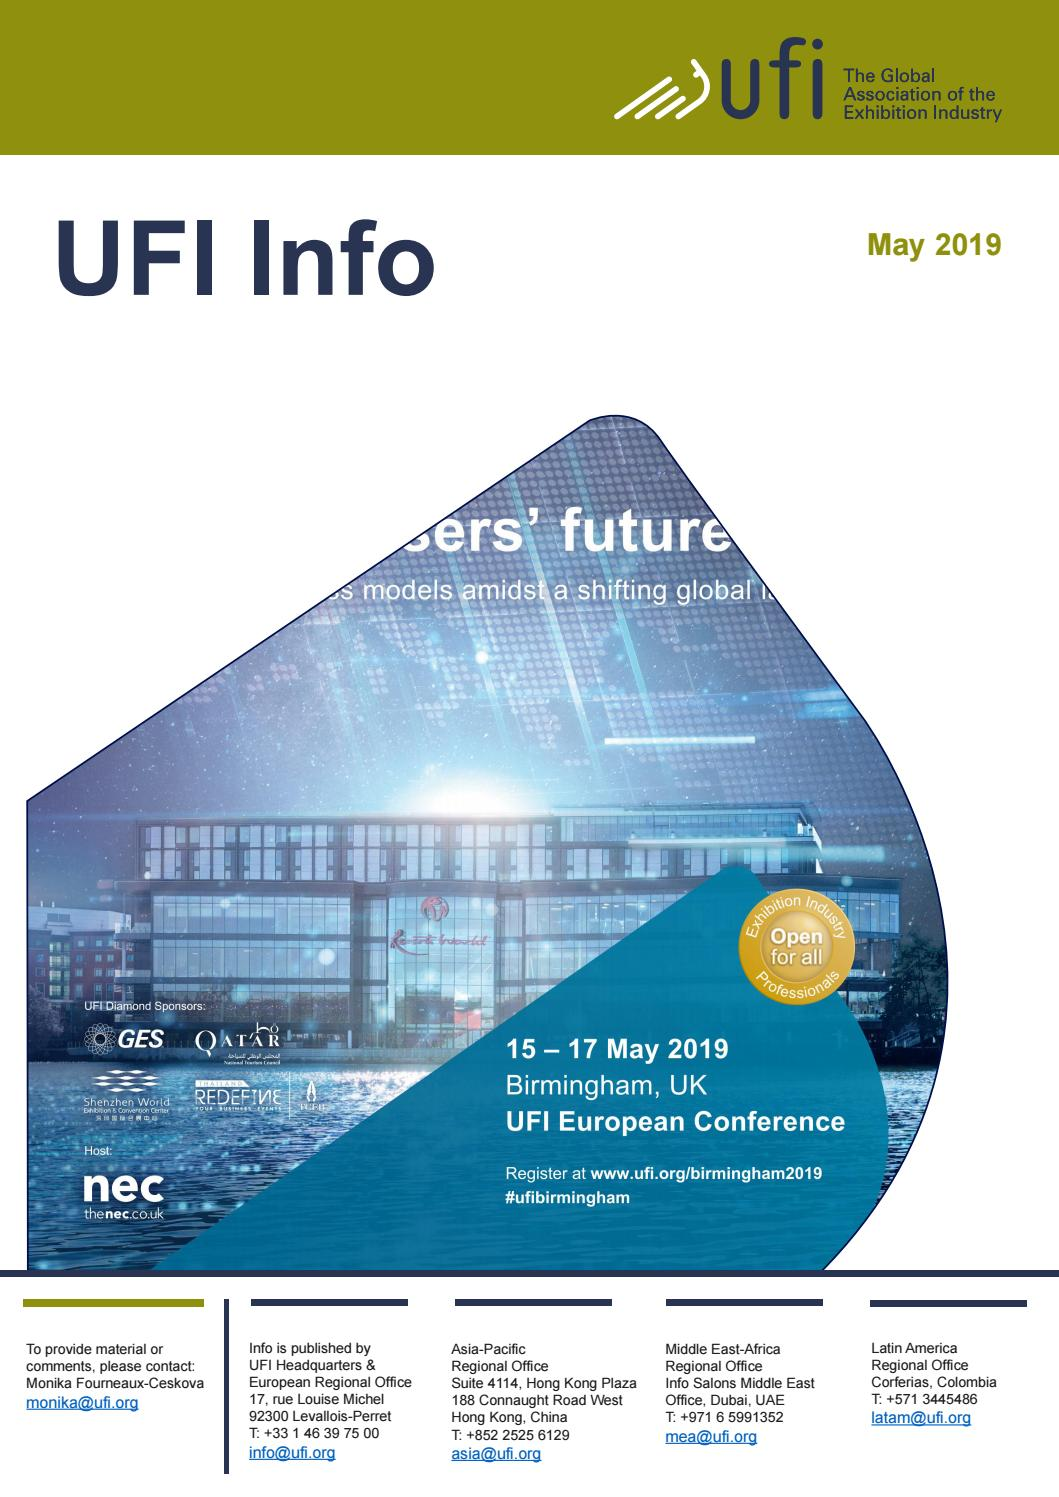 UFI Info - May 2019 by UFI, The Global Association of the